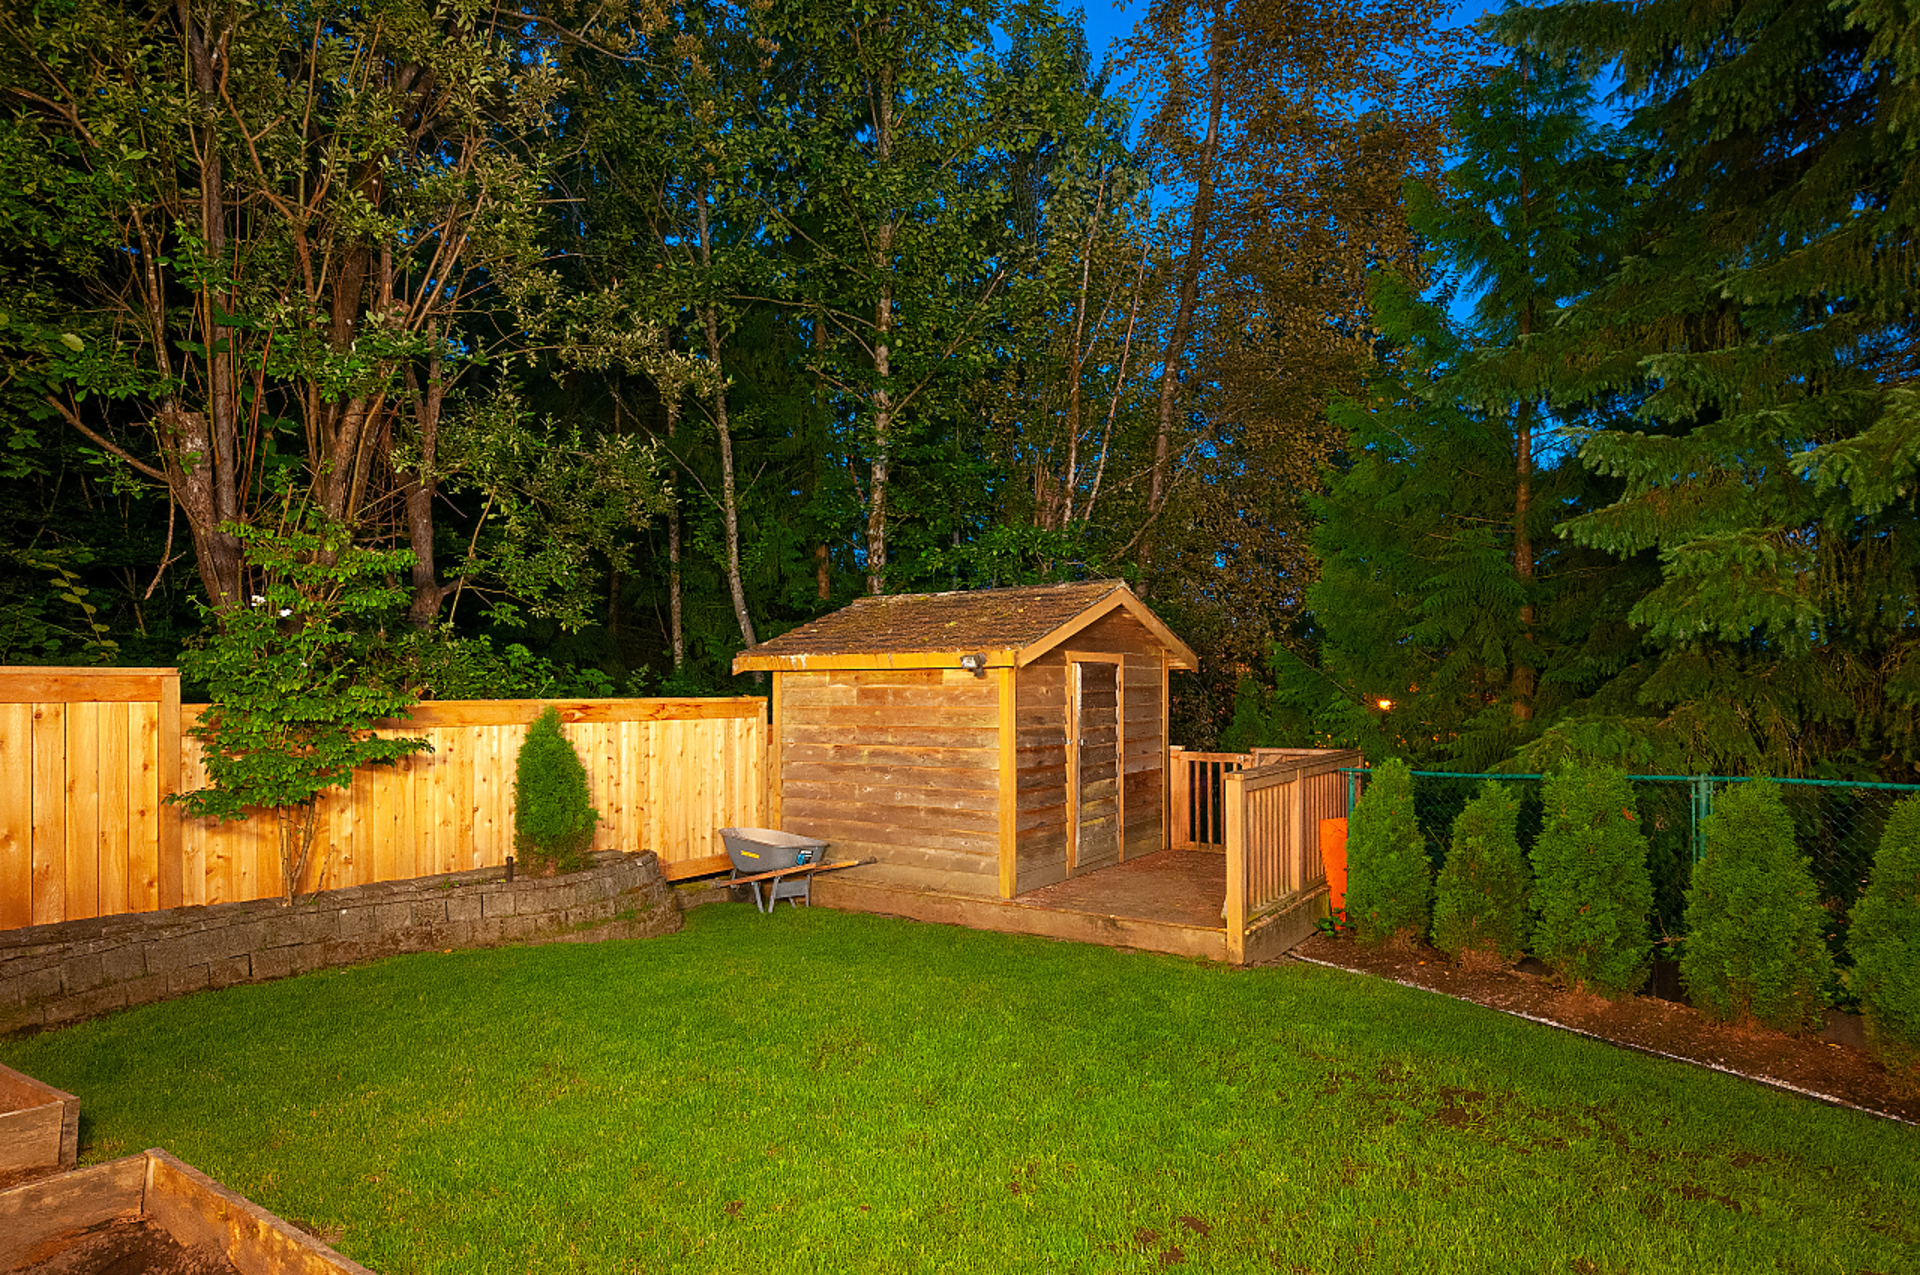 037 at 20 Chestnut Way, Heritage Woods PM, Port Moody